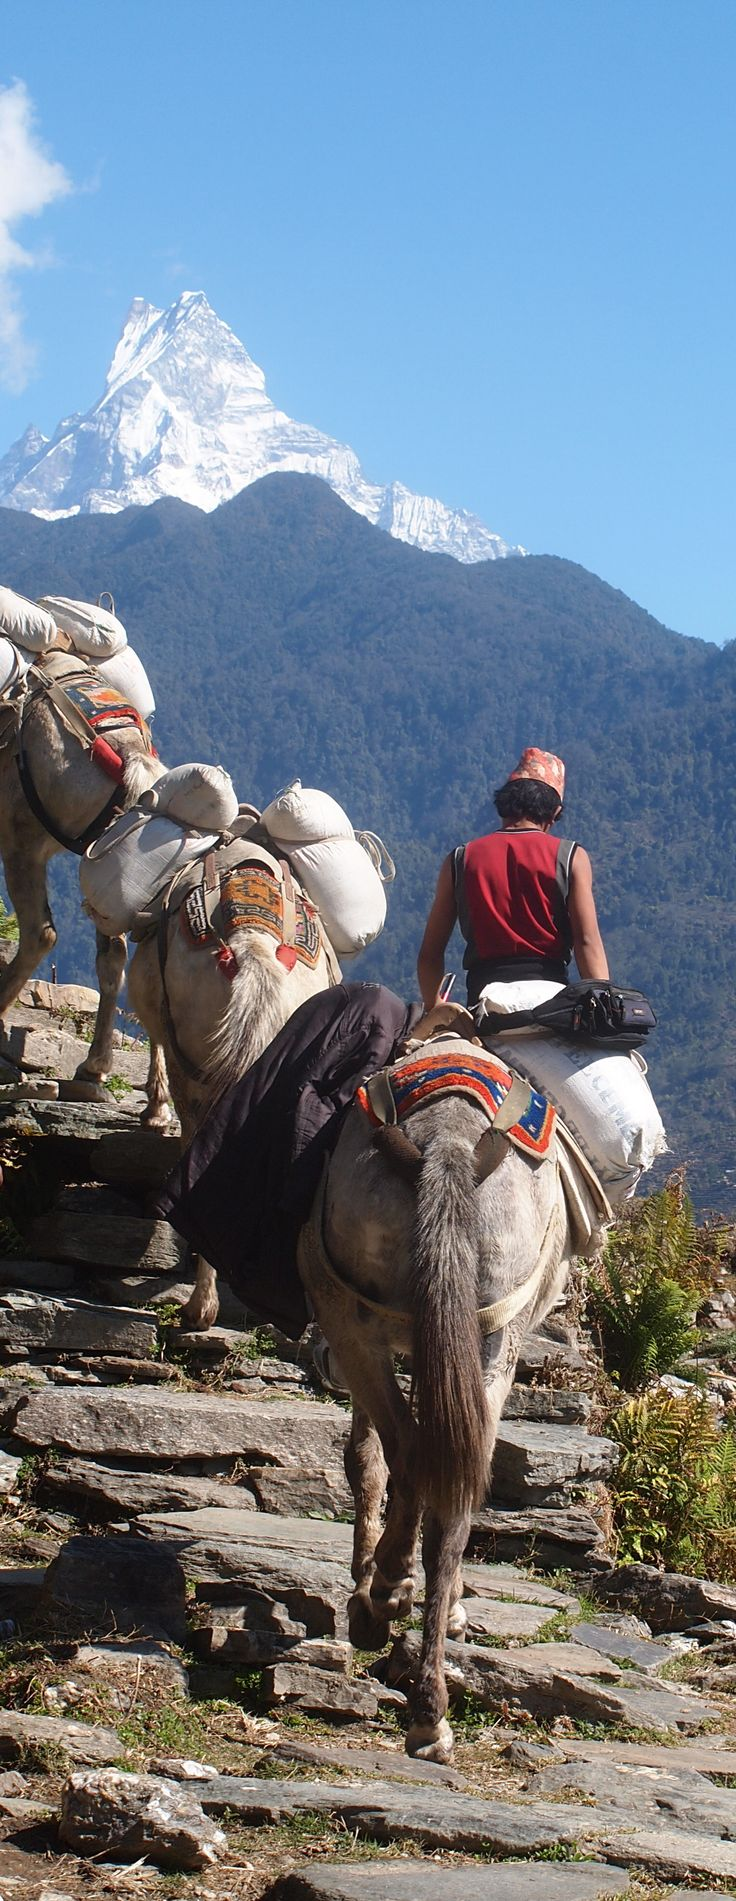 Donkeys on the Annapurna Trail.